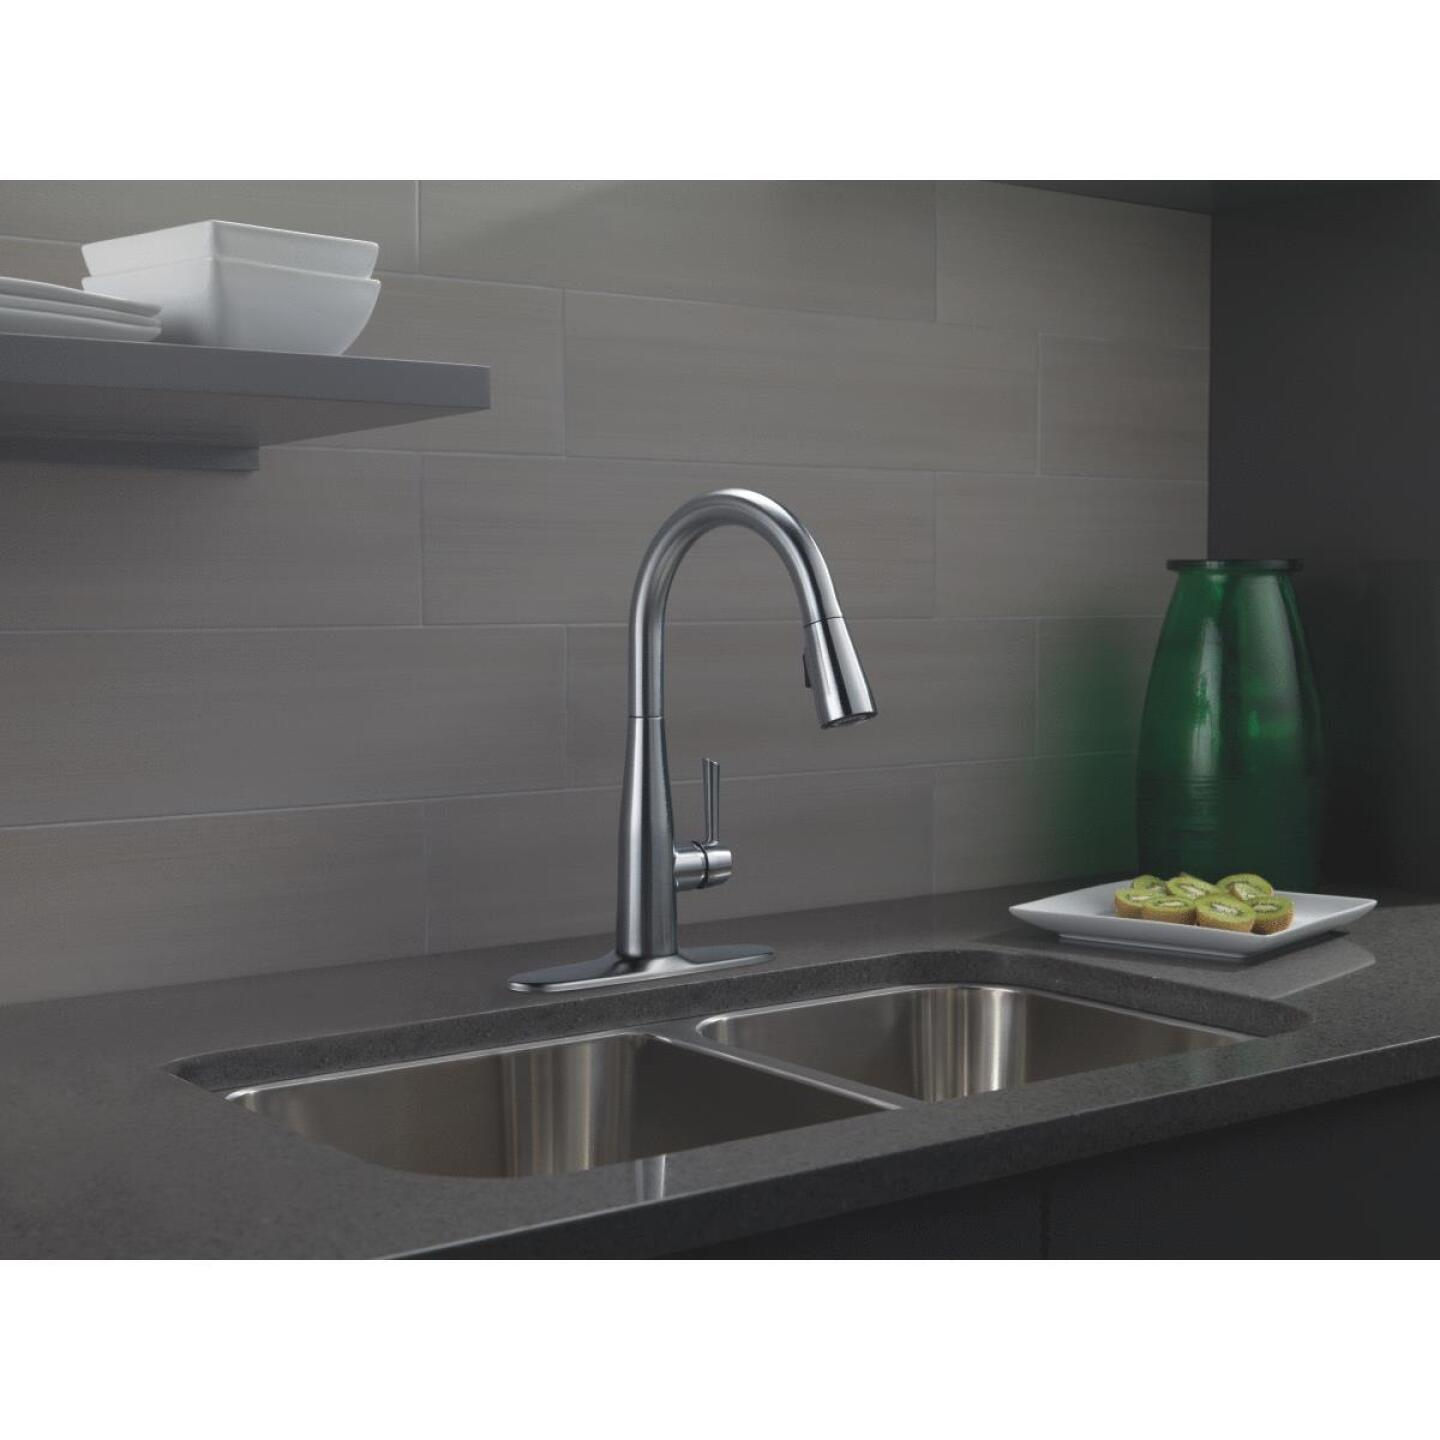 Delta Essa Single Handle Lever Kitchen Faucet with Pull-Down Spray, Stainless Image 2